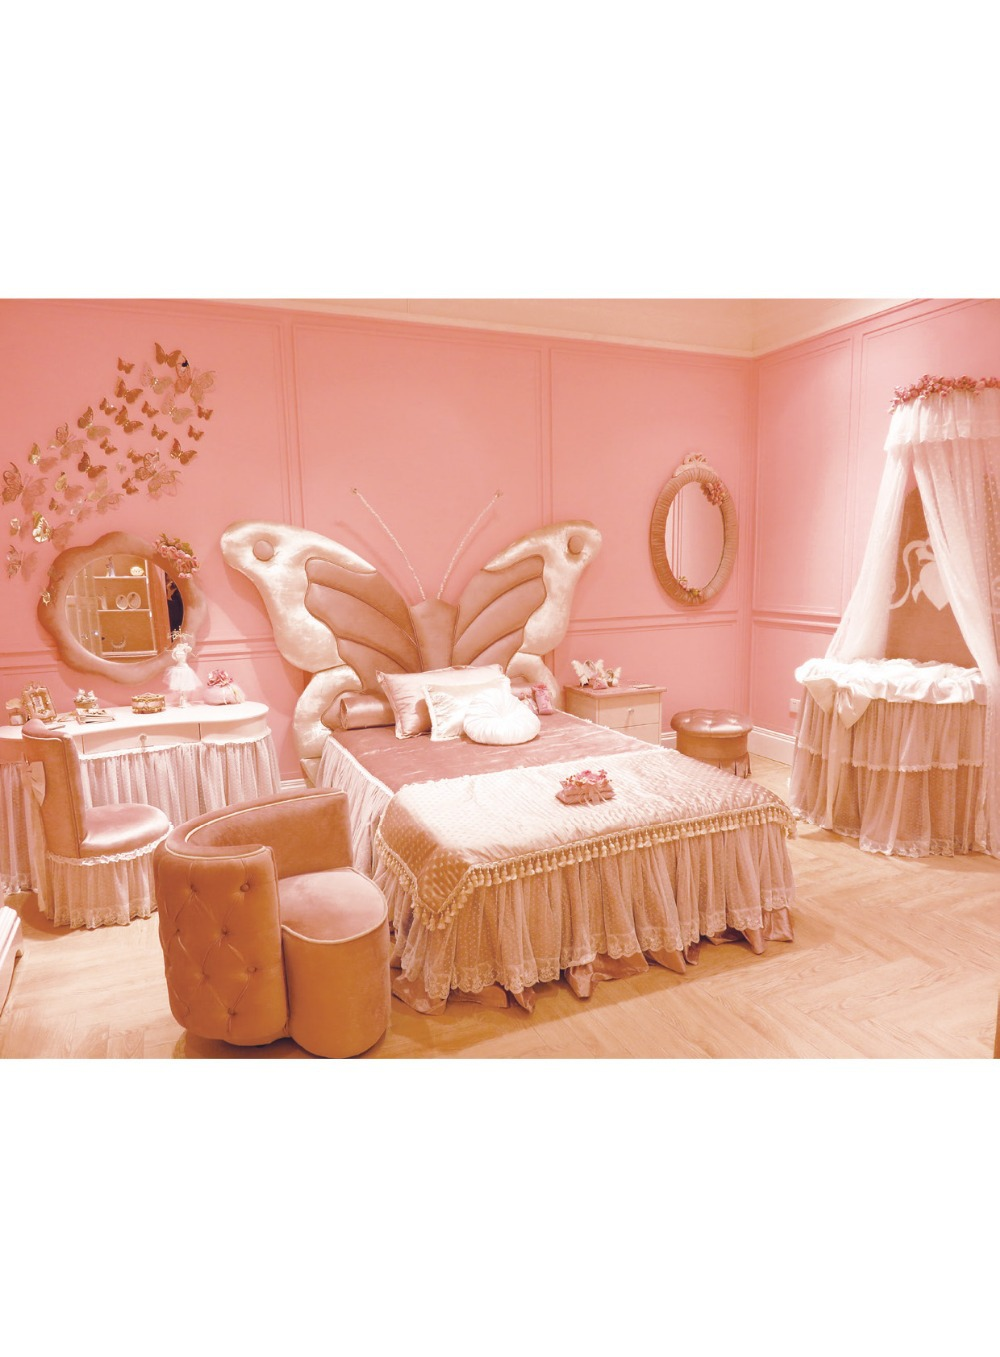 Fairy tale style solid wood kids bed butterfly shape for Fairytale beds